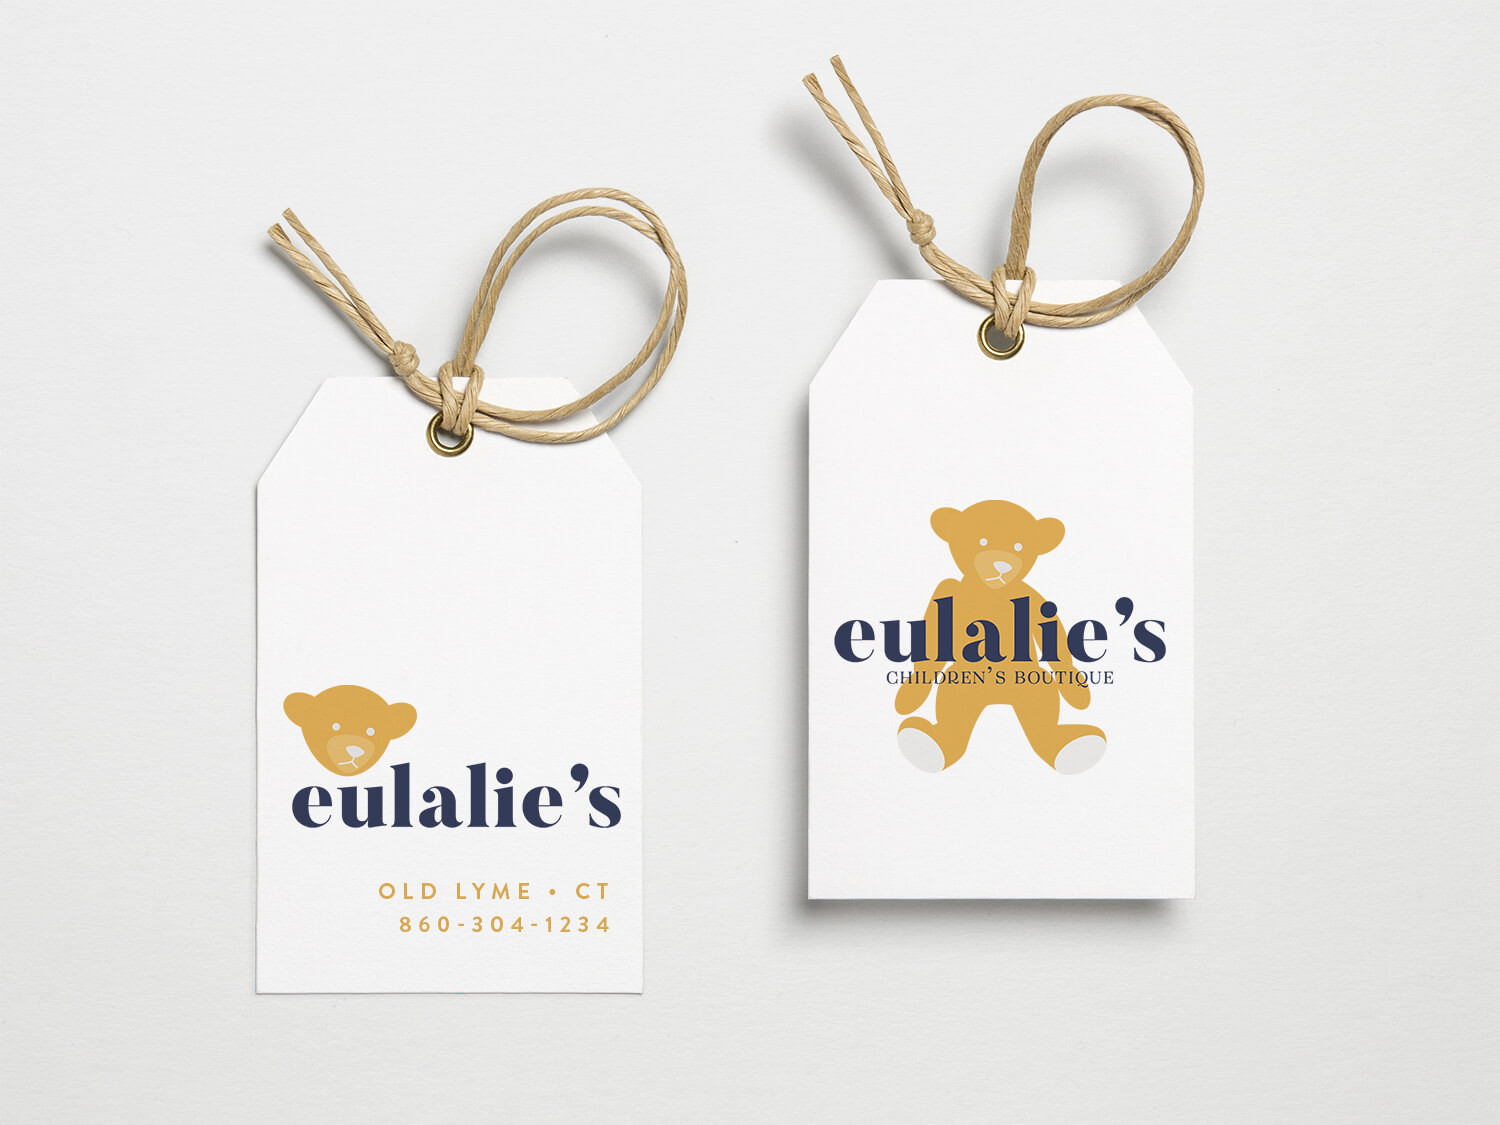 Two hang tags on a white background for a children's clothing boutique with a teddy bear logo.